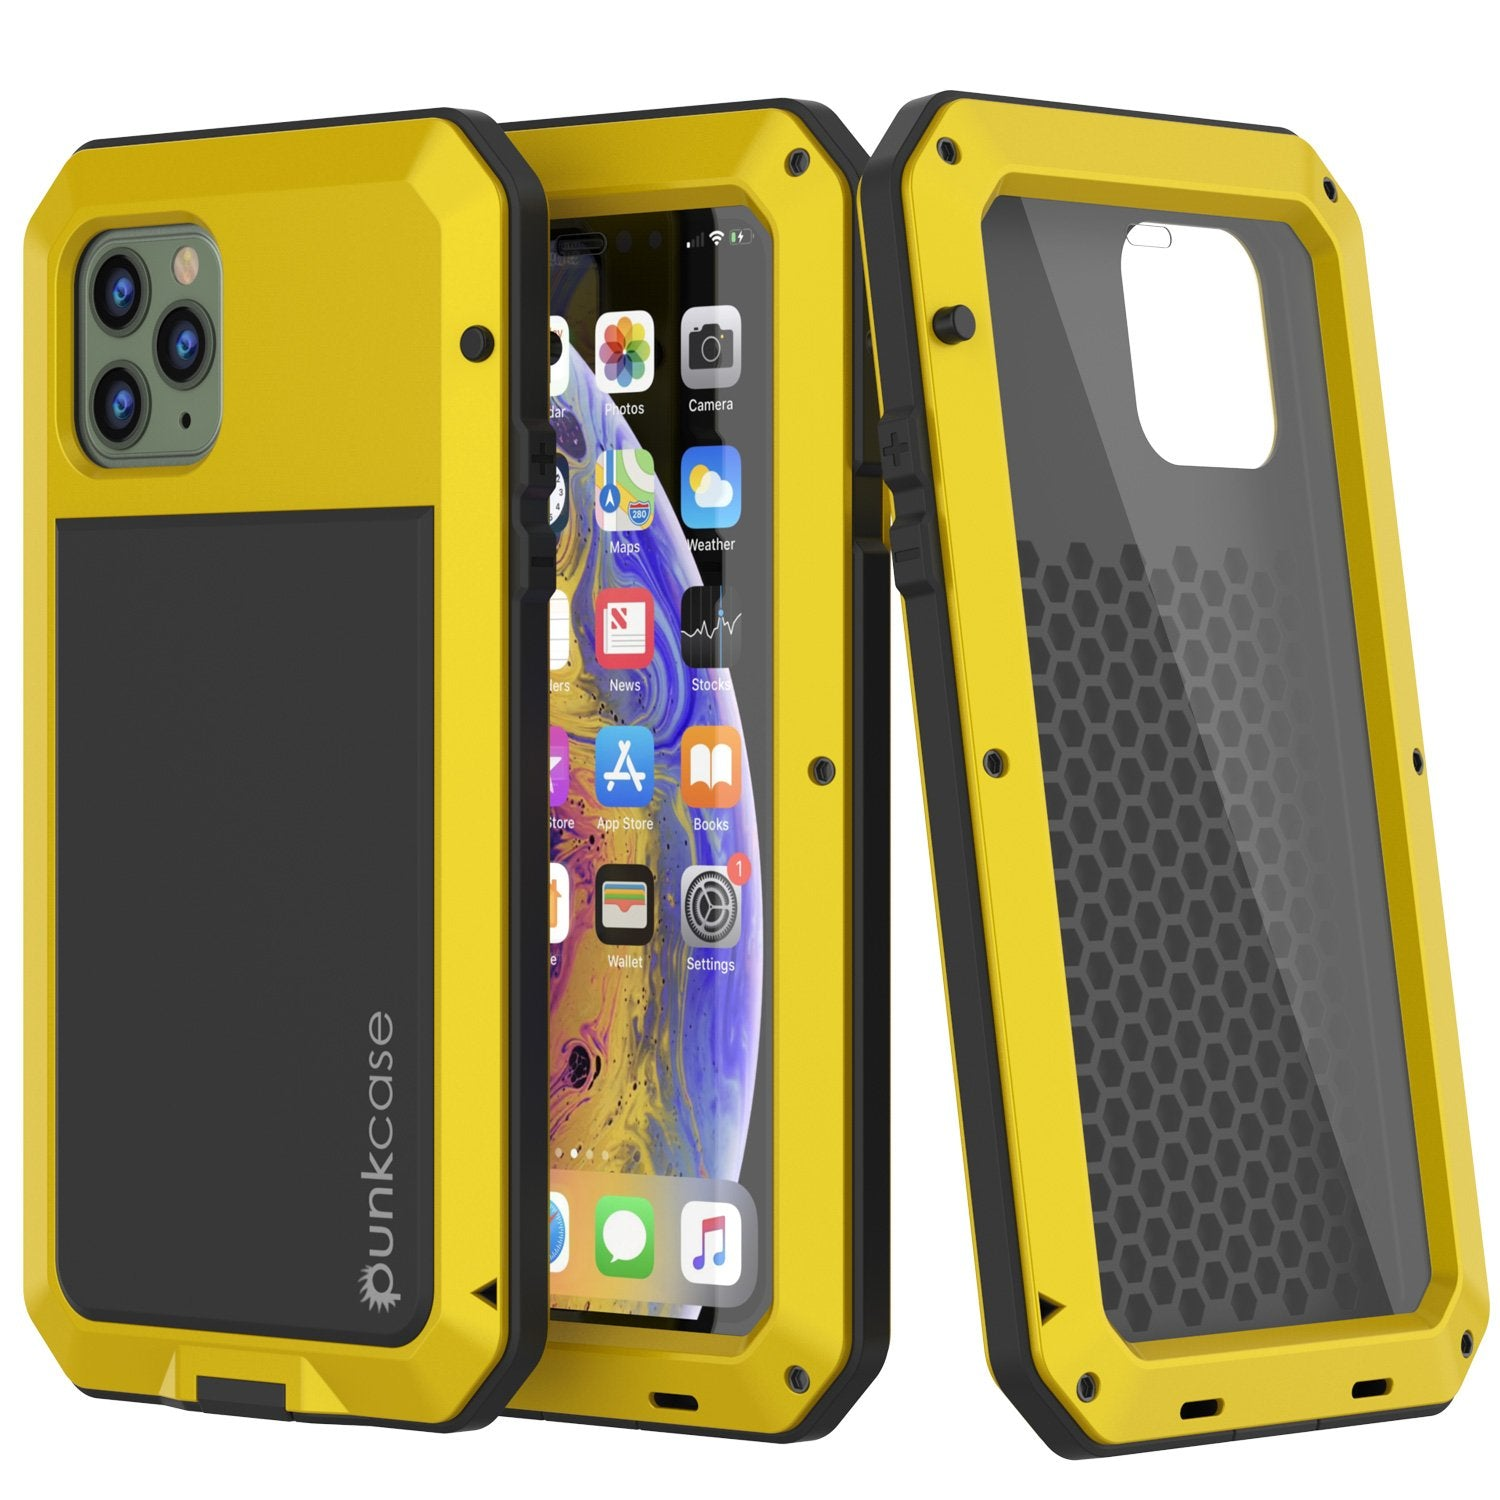 iPhone 11 Pro Max Metal Case, Heavy Duty Military Grade Armor Cover [shock proof] Full Body Hard [Neon]